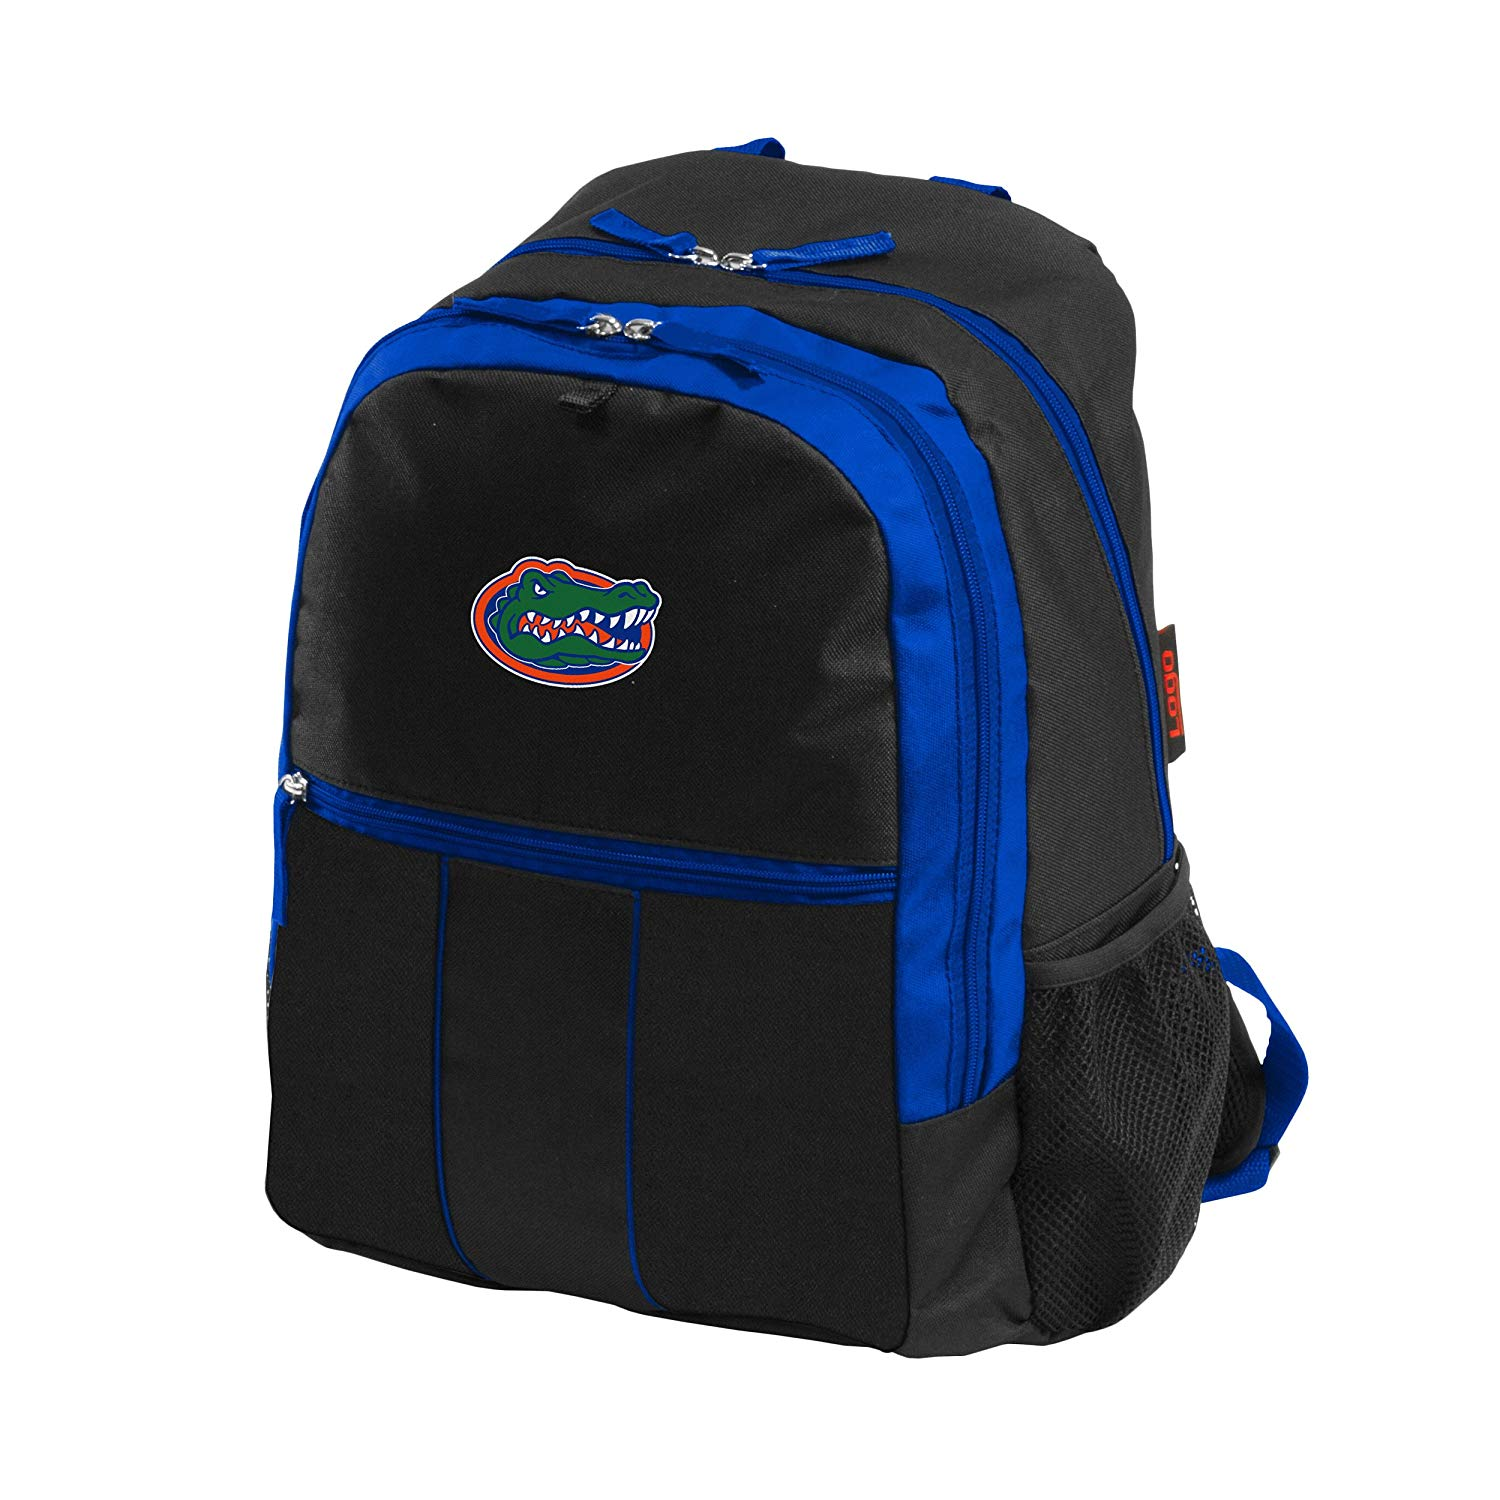 NCAA Victory Backpack by Logo Brands.